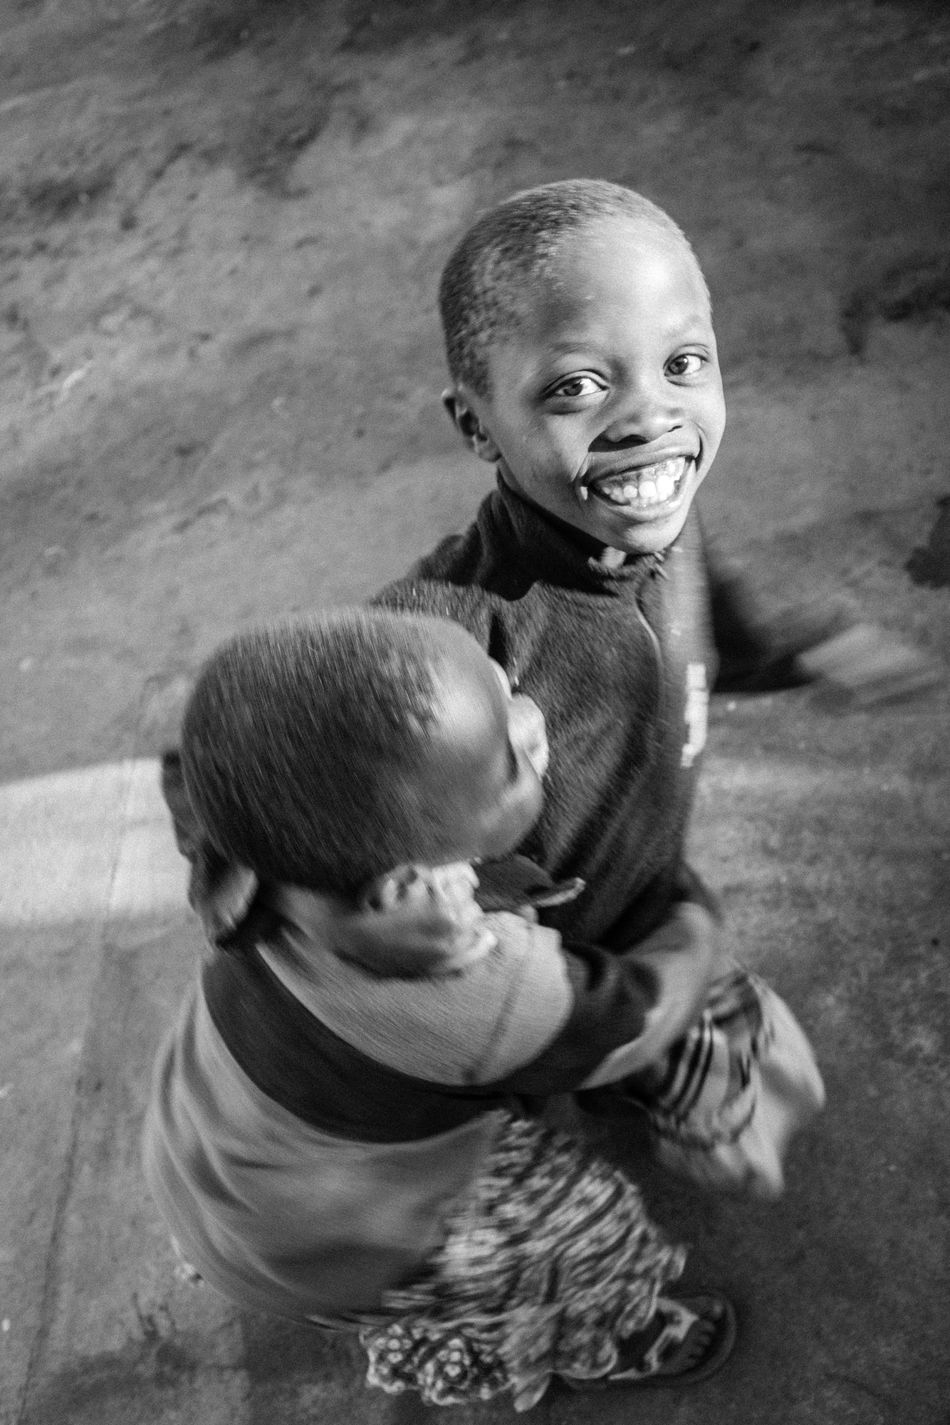 Africa African Africanlife Baw Beauty Blackandwhite Blackpower Canon CanonEOS100D Child Childhood Cute Exploring Iringa Life Lifeisdifferentinhere Love Portrait Real People Realpeople Smile Smiling Tanzania Travel Travelling